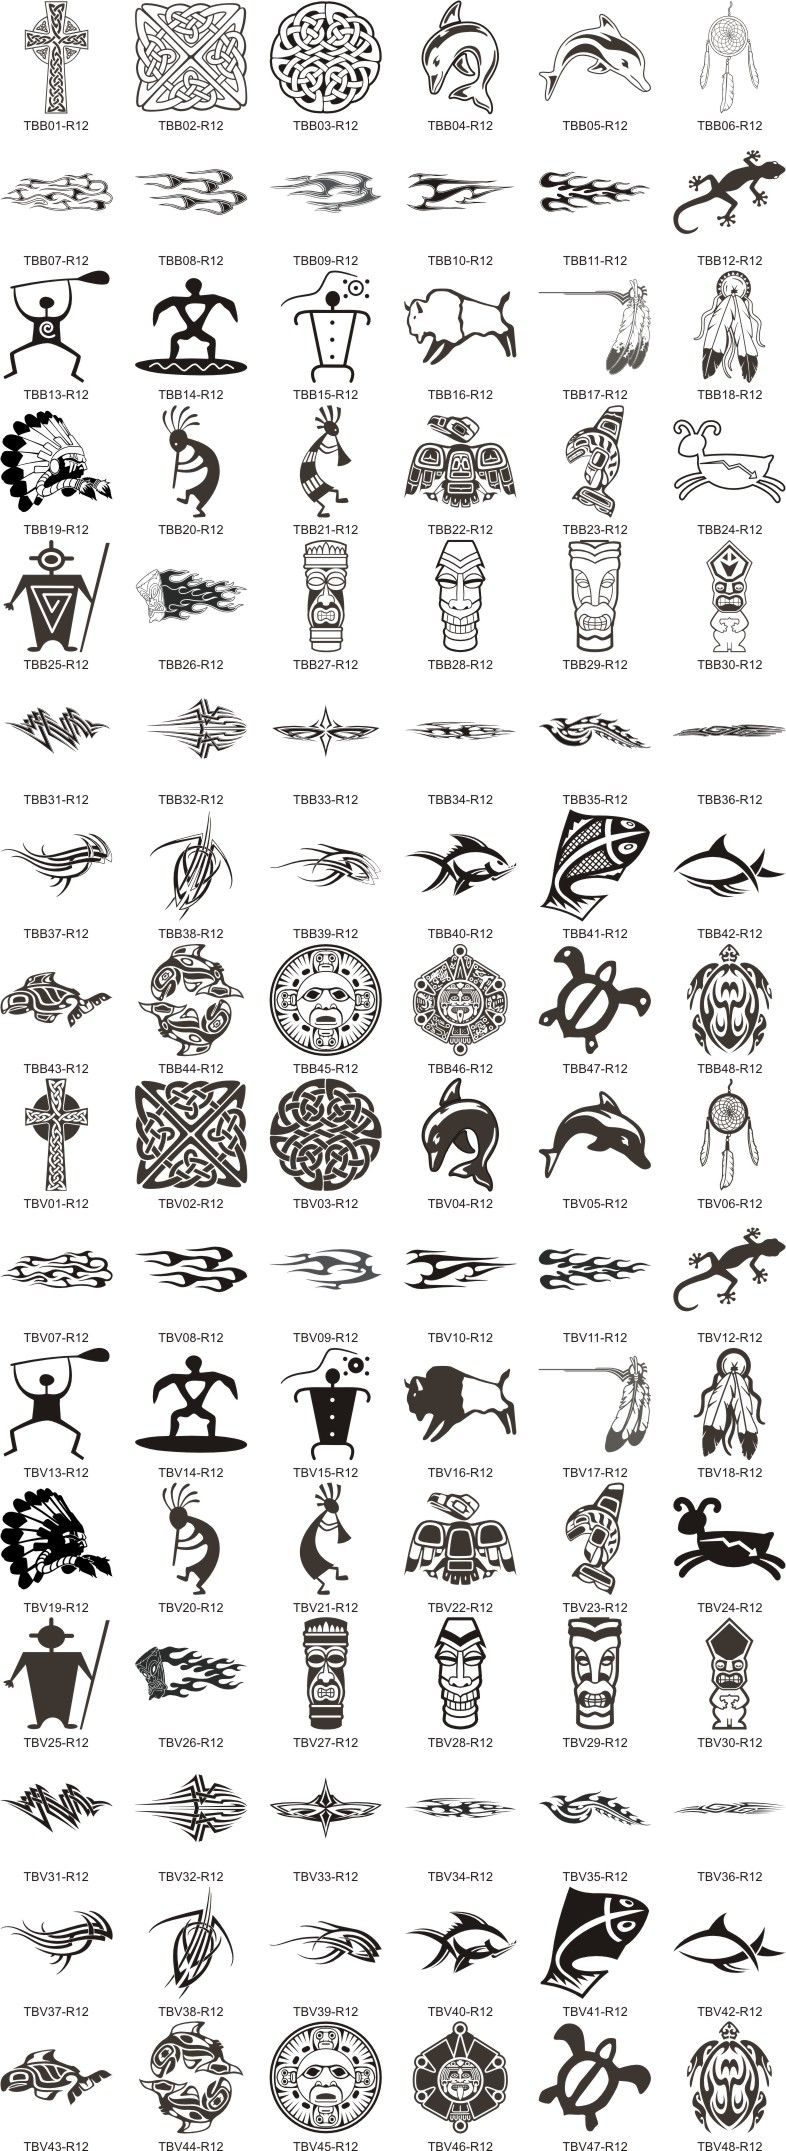 Symbols And Their Meanings Fonts And Symbols With Images